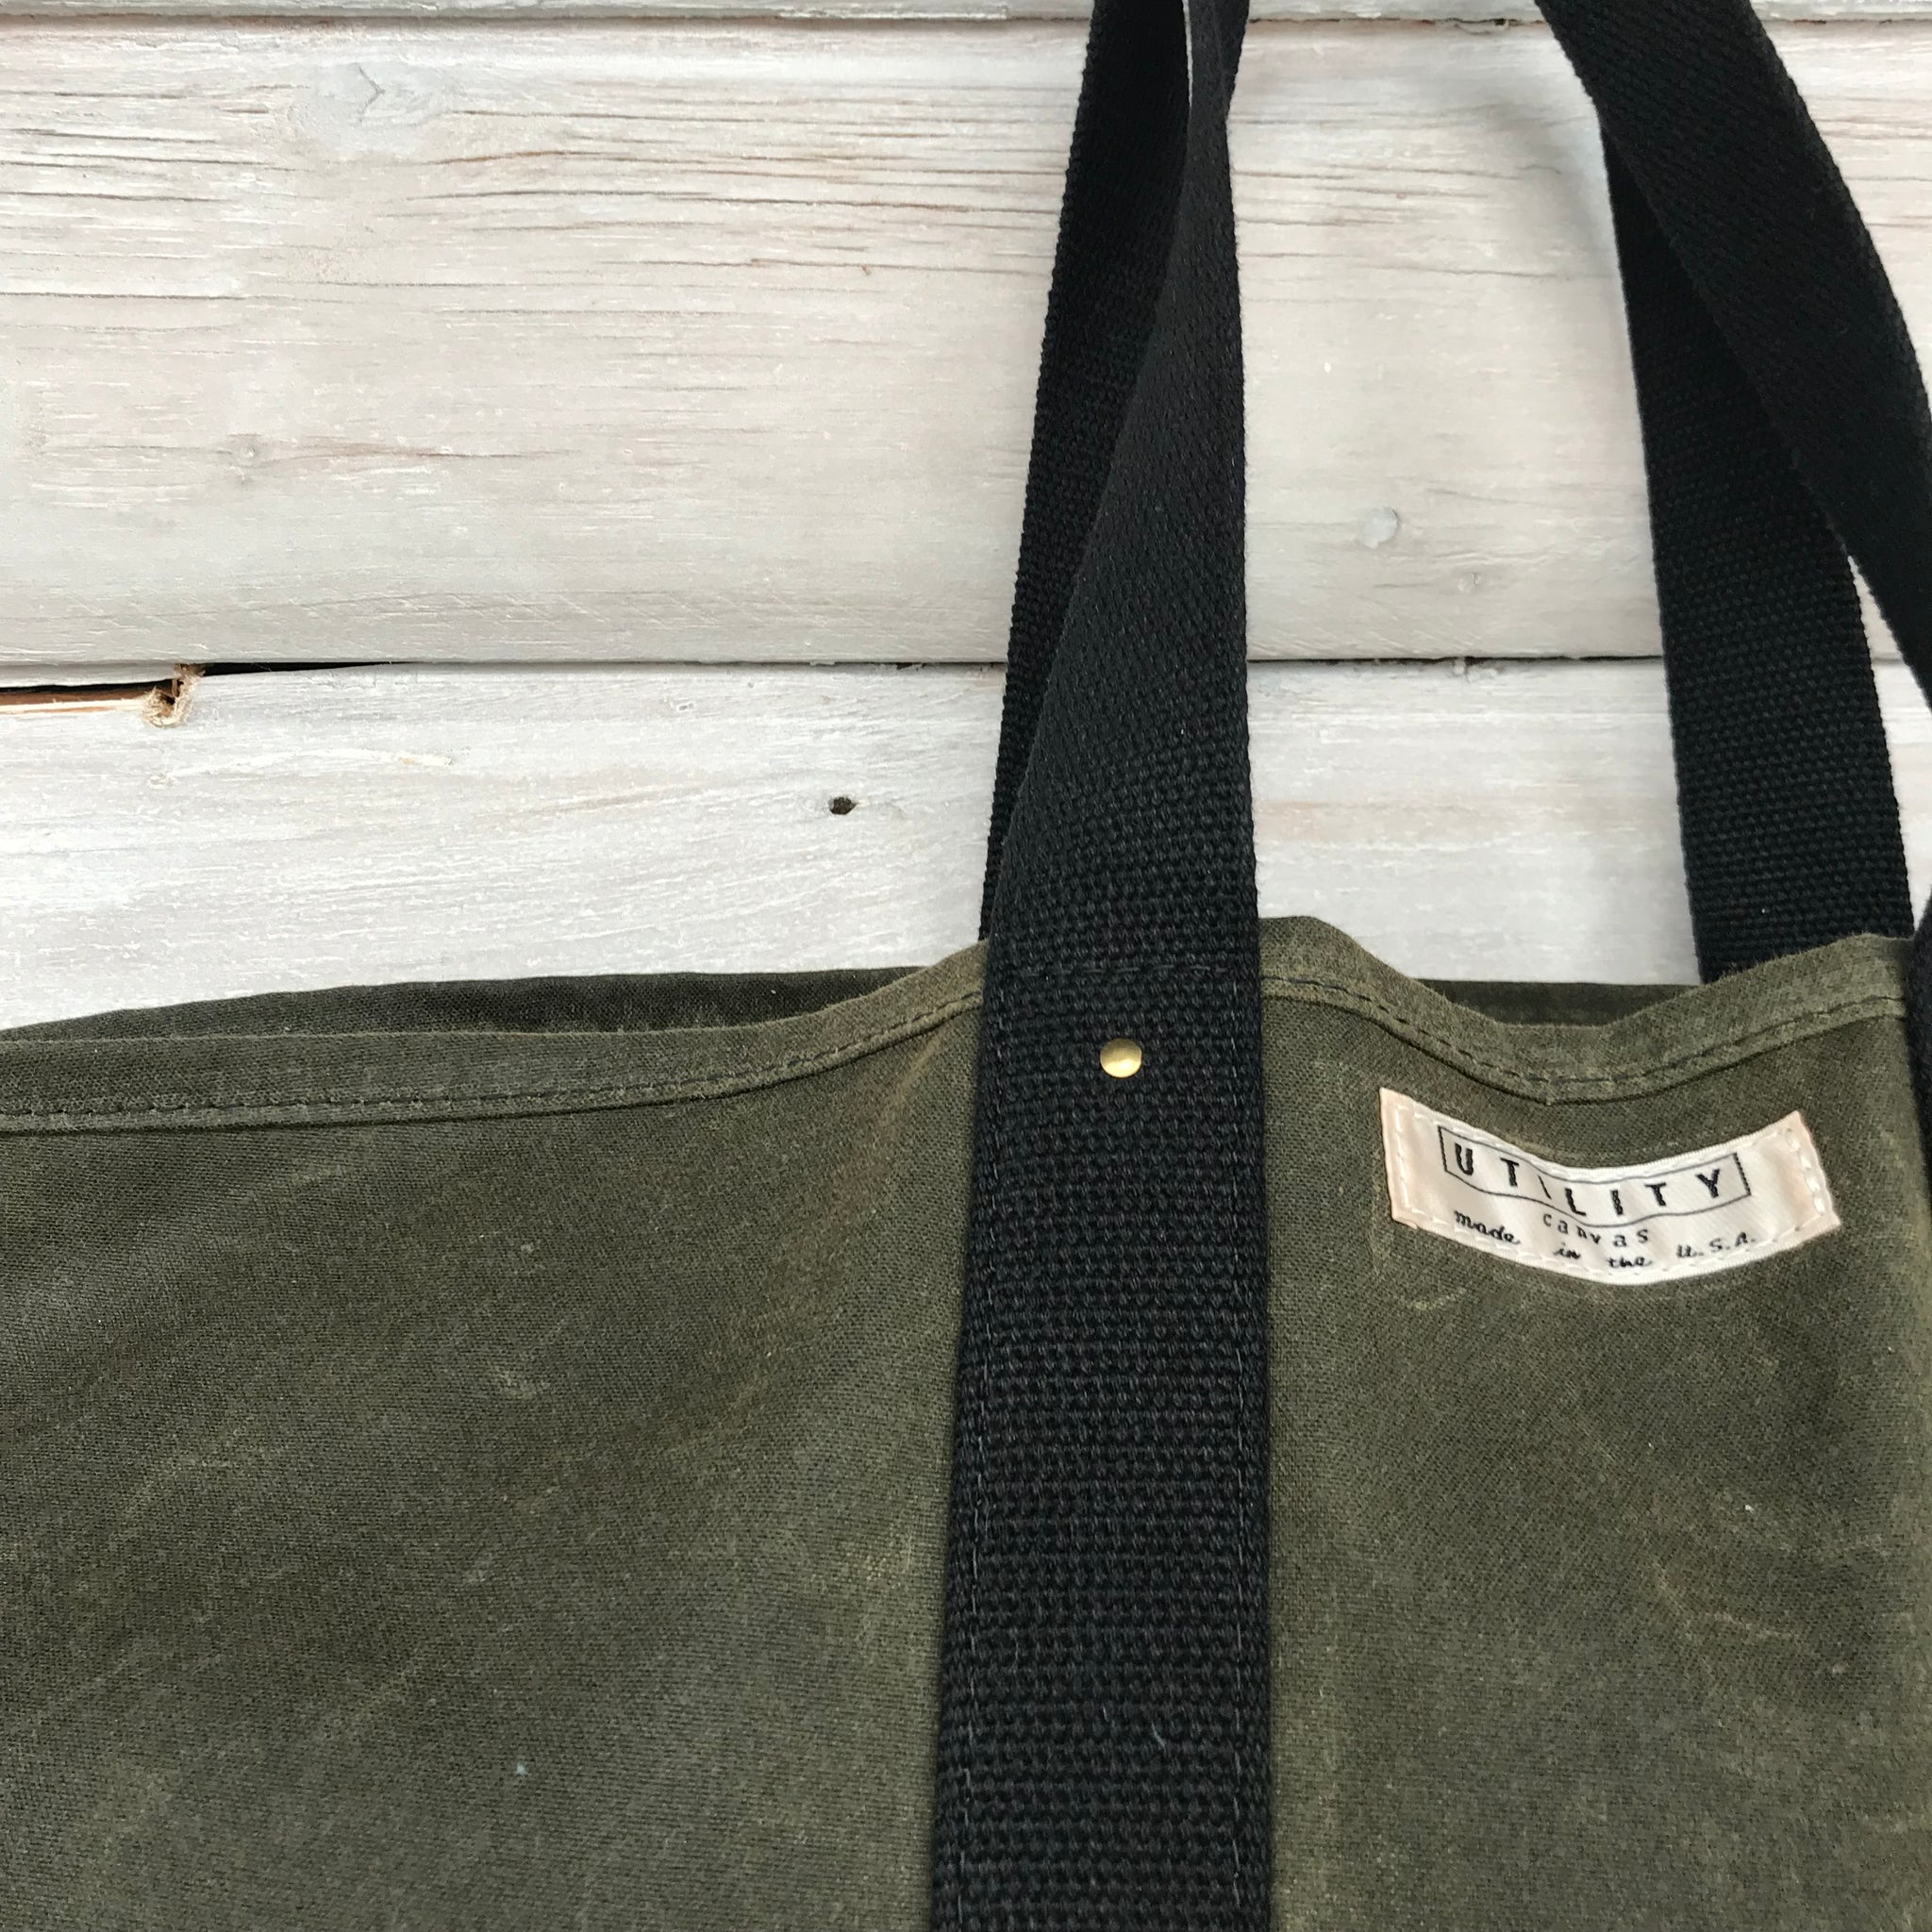 Waxed Canvas Coal Bag by Utility Canvas